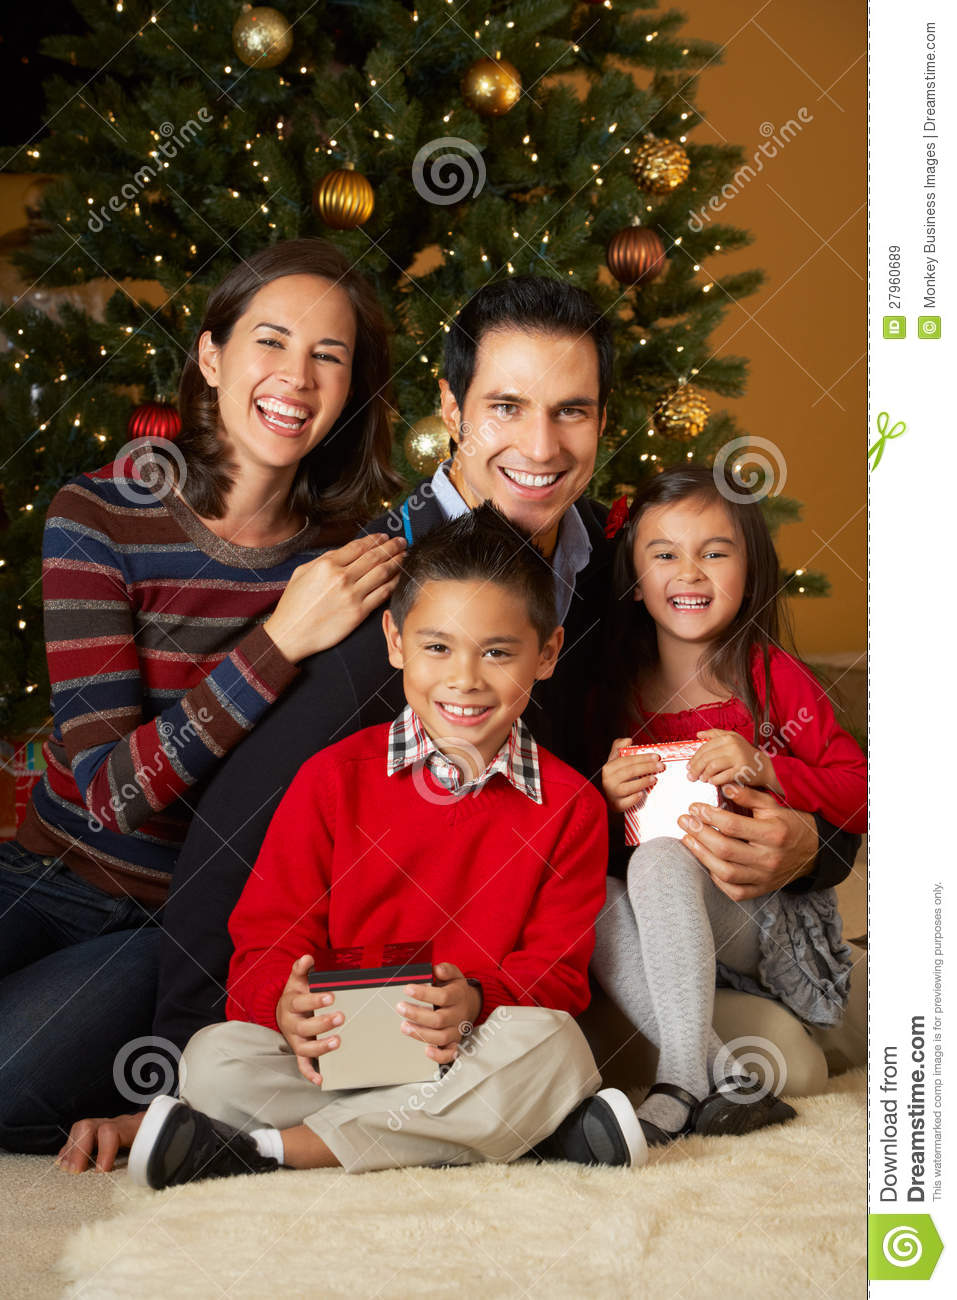 family in front of christmas tree stock image image of camera hispanic 27960689. Black Bedroom Furniture Sets. Home Design Ideas